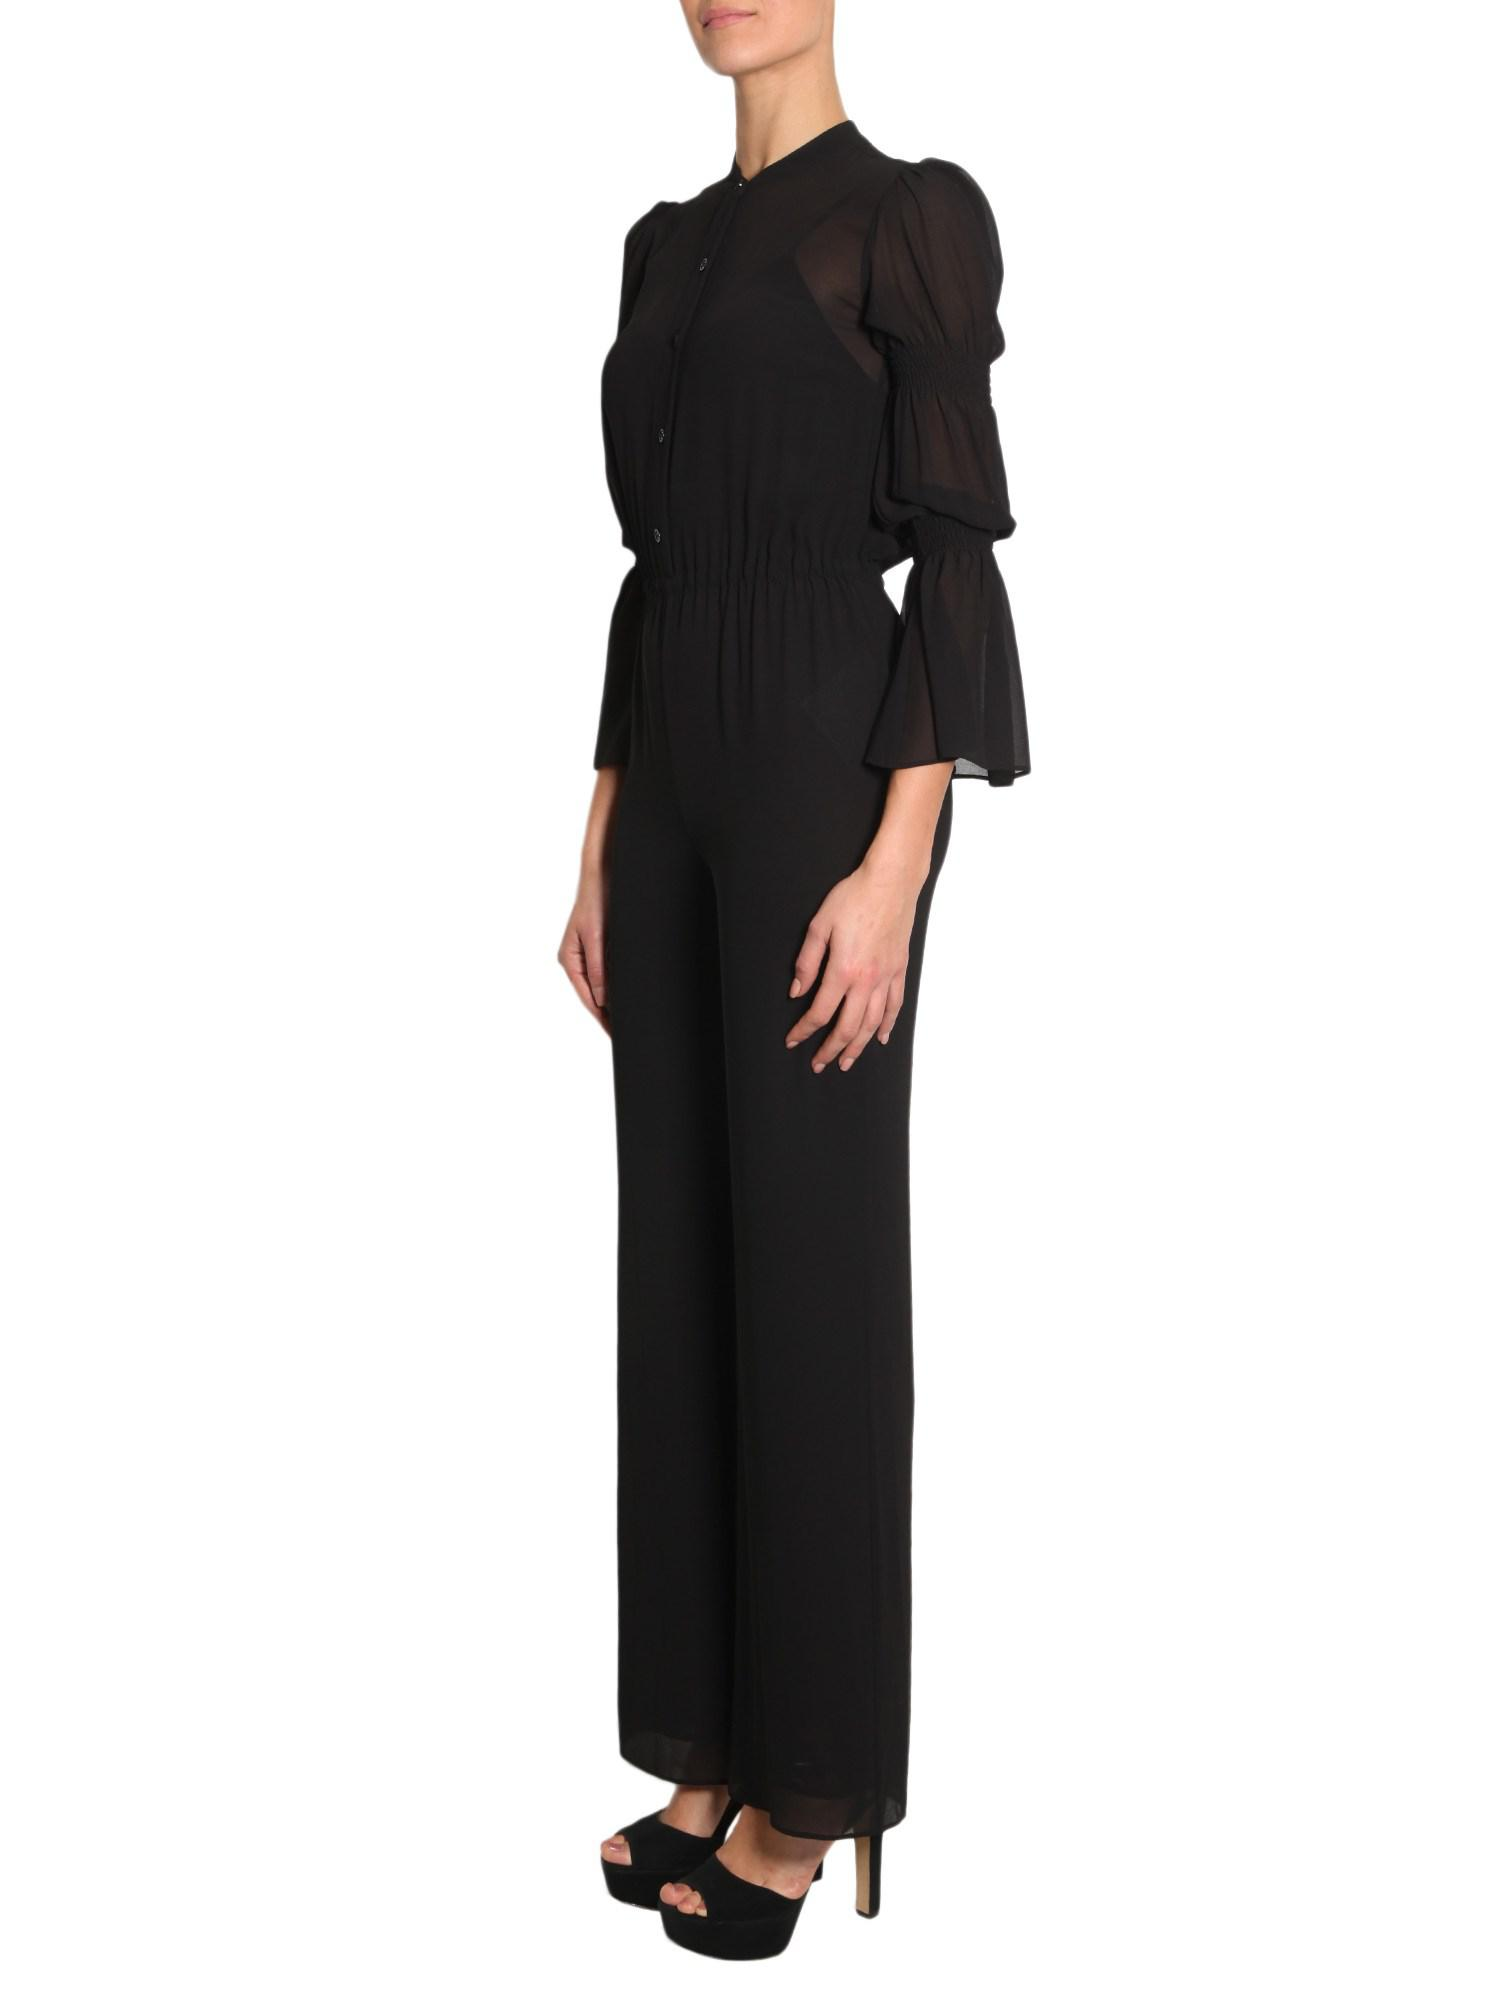 34149d7ba2d MICHAEL Michael Kors Long Sleeve Crêpe Jumpsuit With Smocked Detail in  Black - Lyst